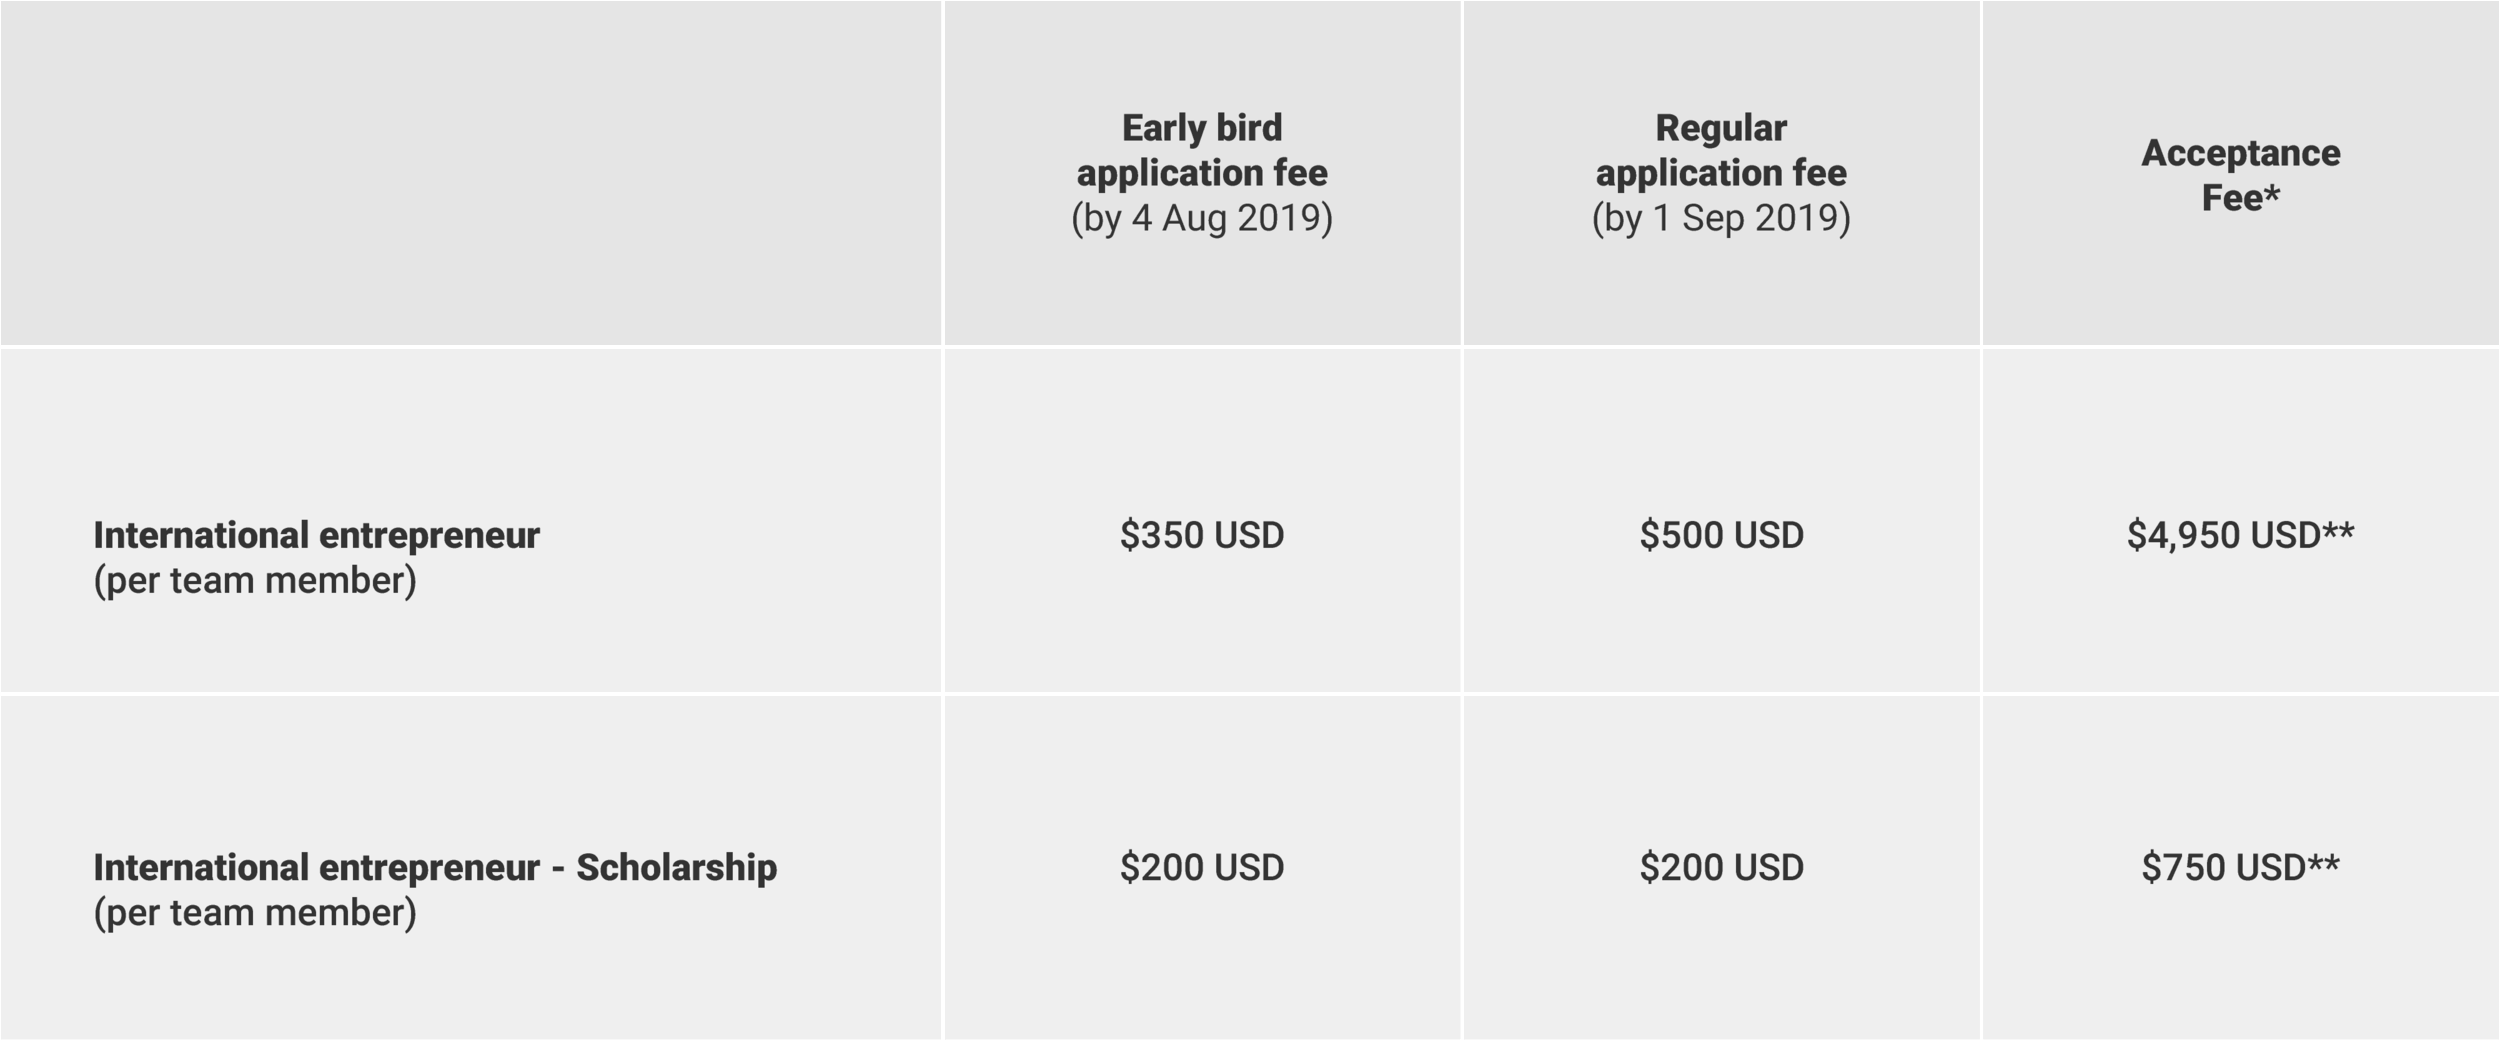 ehf application fees